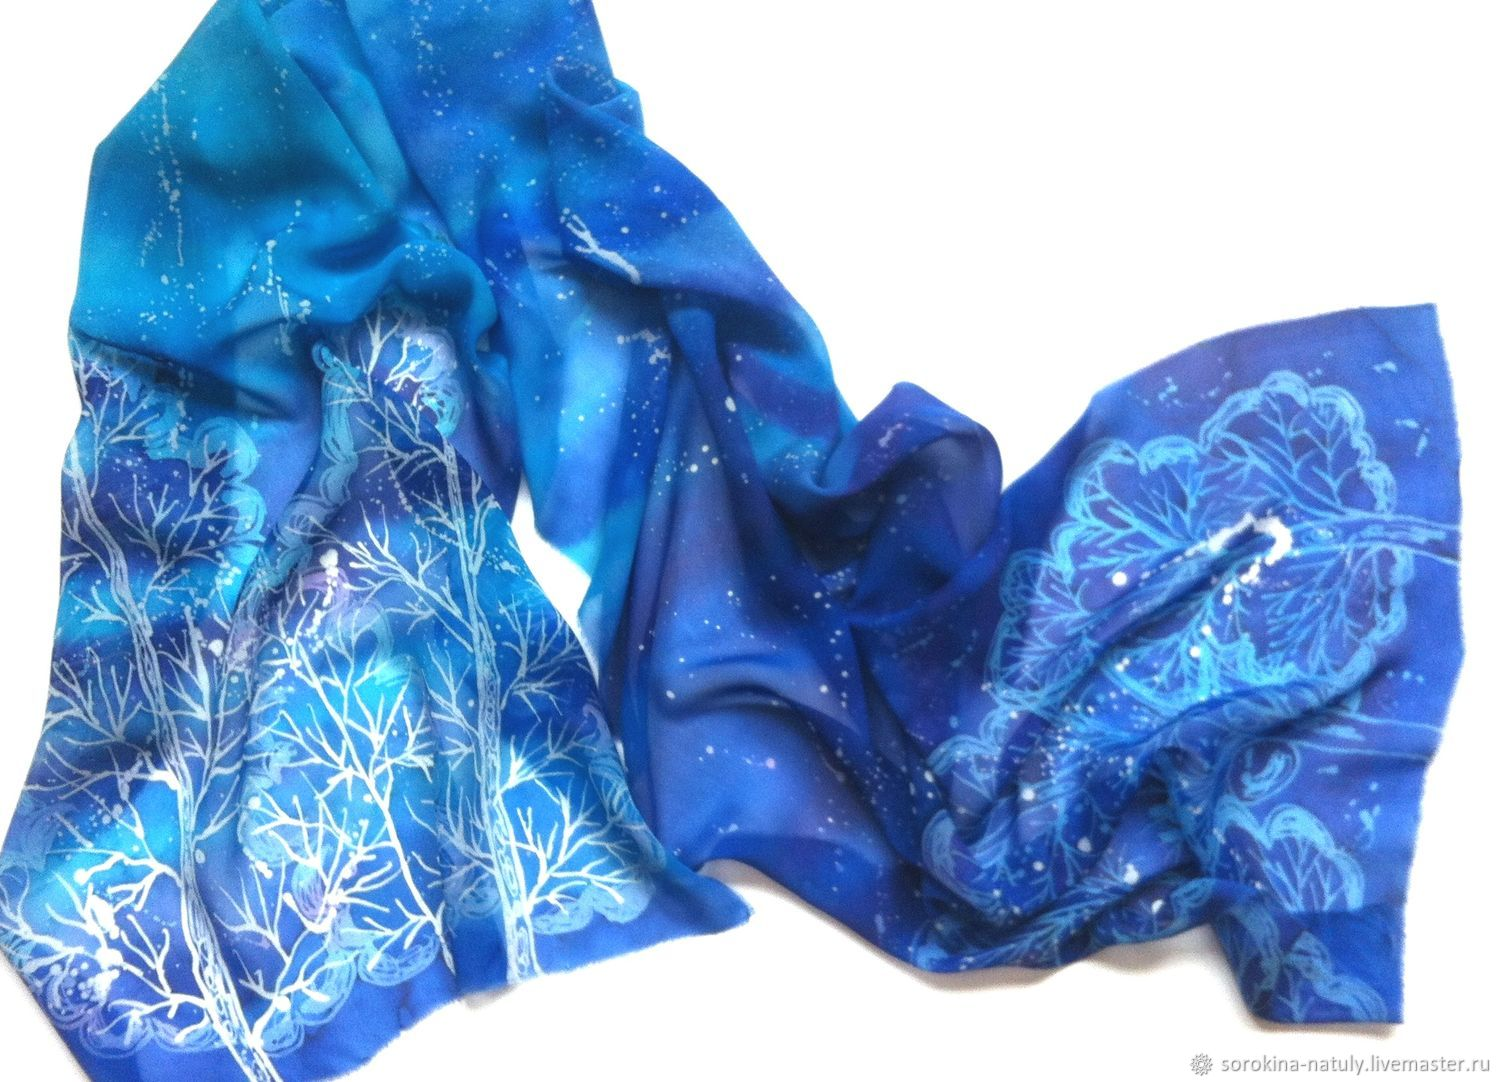 Scarves and scarves Handmade Buy batik silk scarf Tesniny forest Batik from Natasha Sorokina Handmade Batik scarf for Women Chiffon scarf to Buy a gift for the new year is 2018 Winter Forest Snow Blue